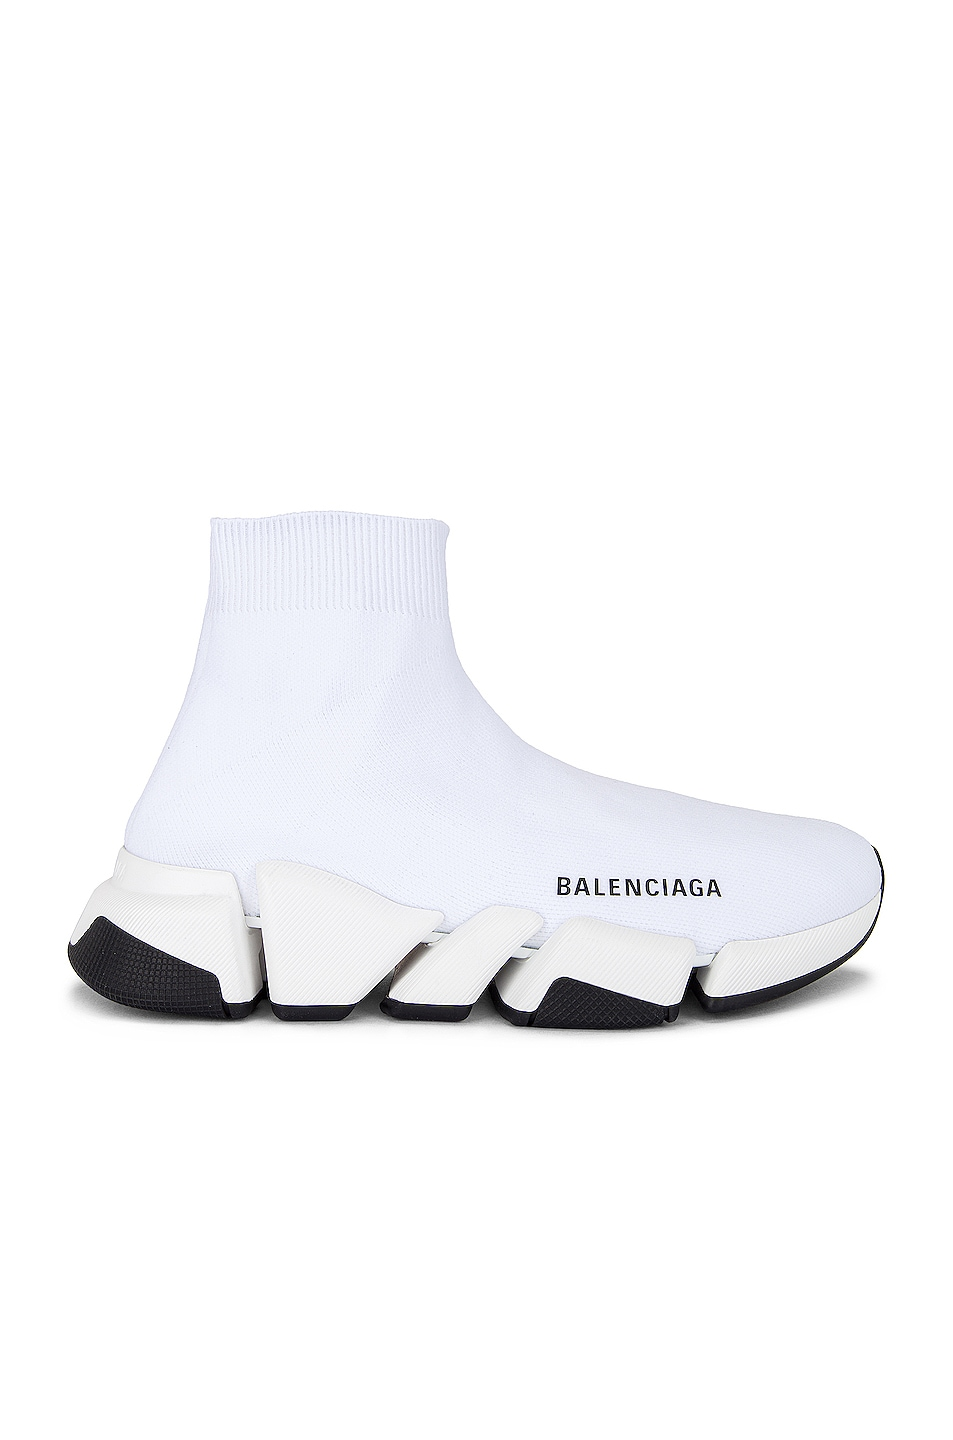 Image 1 of Balenciaga Speed 2 Low Top Sneakers in White & White & Black